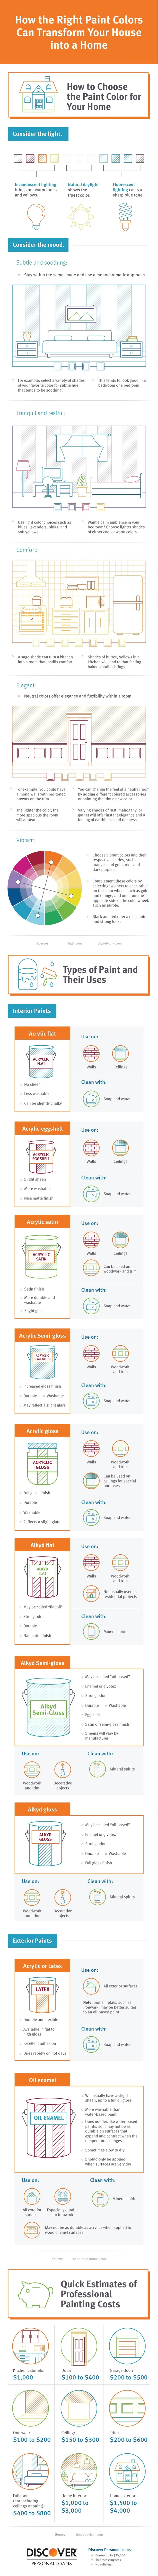 How the Right Paint Colors Can Transform Your House into a Home #infographic